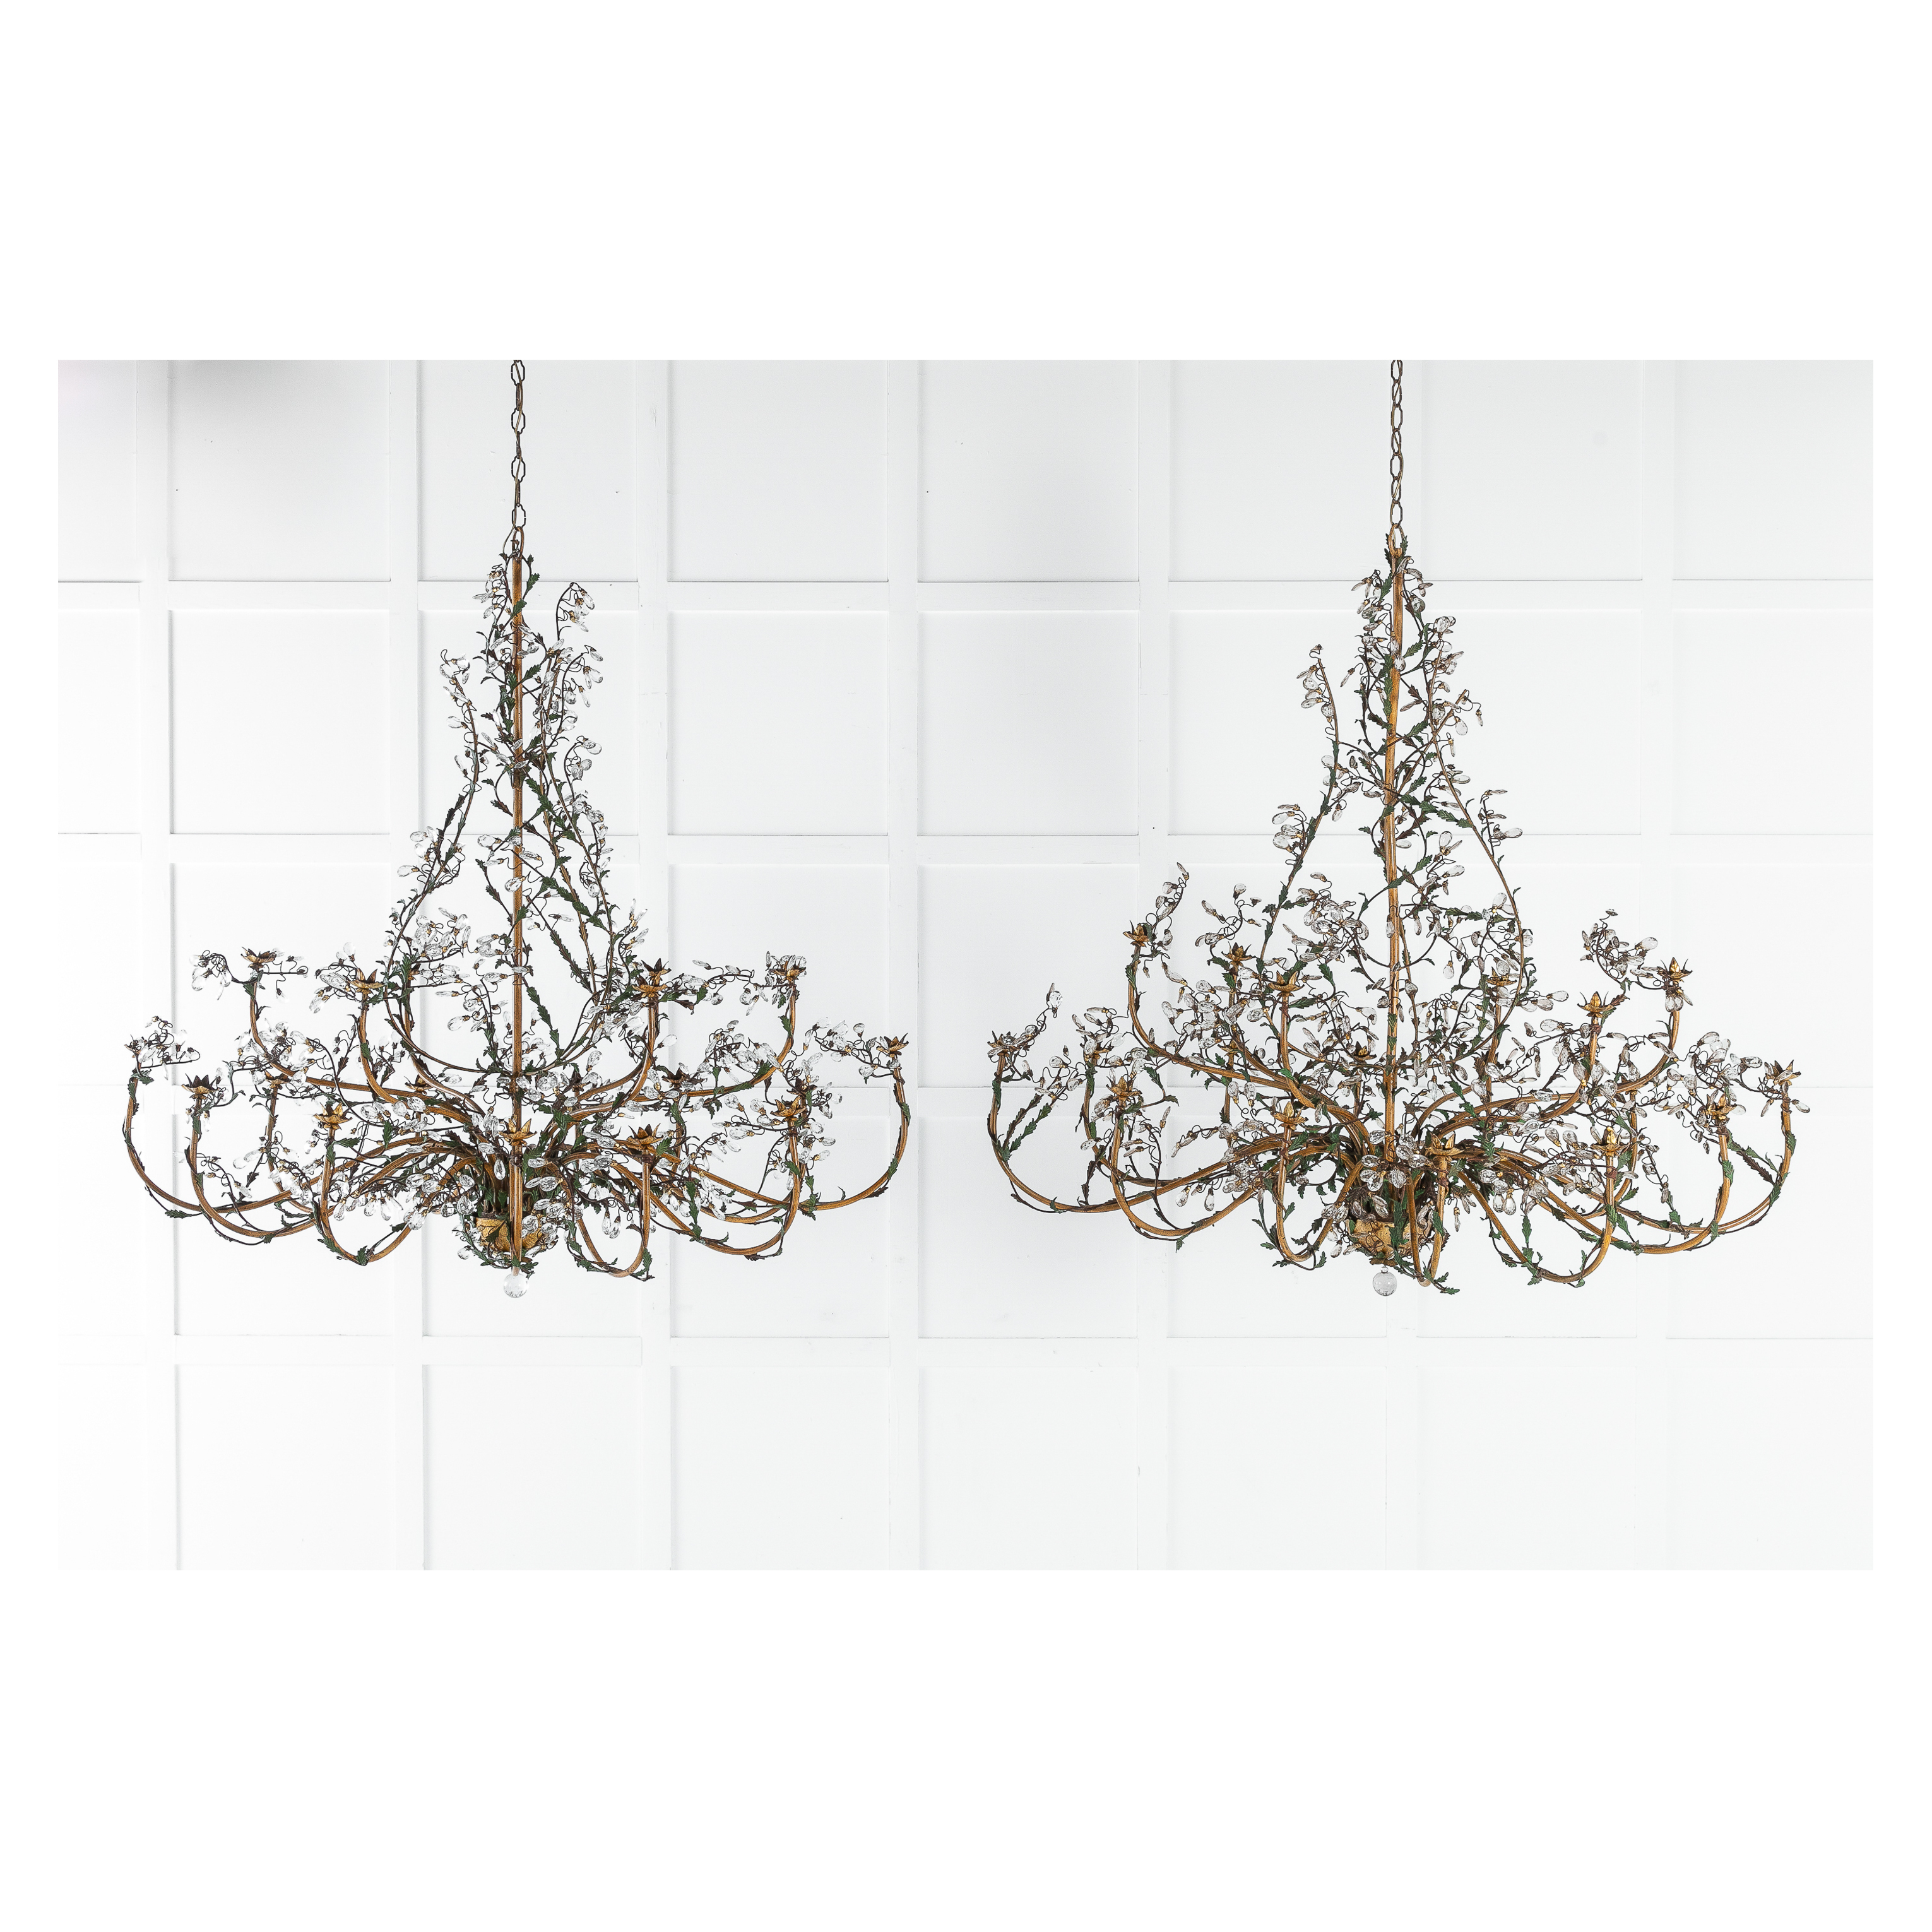 The image for Big Chandeliers 1